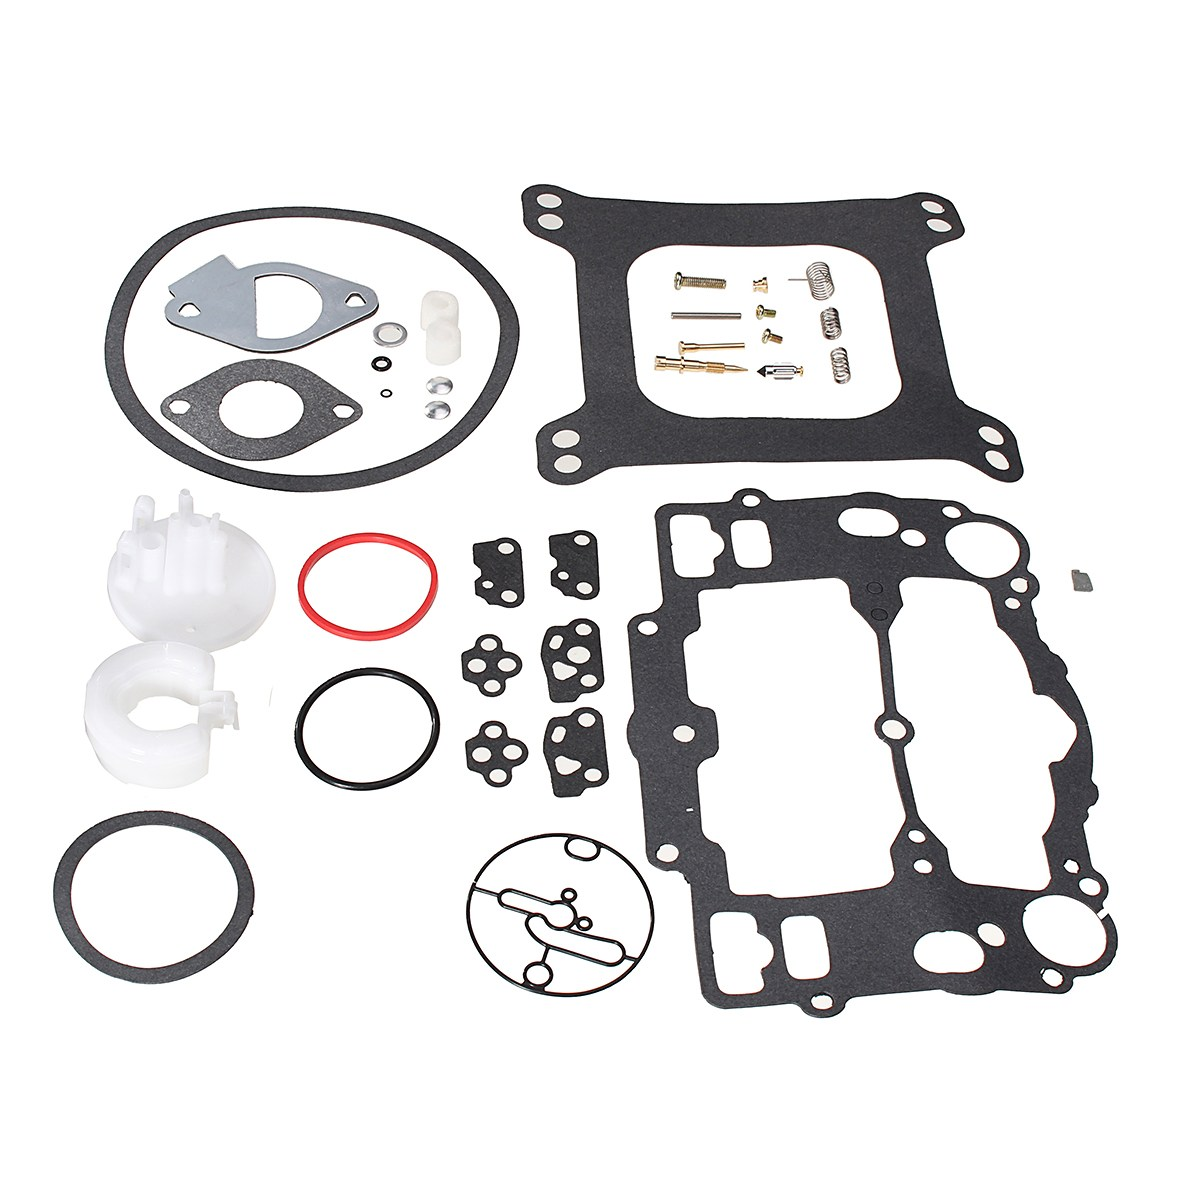 Carburetor rebuild kit for edelbrock 1400 1404 1405 1406 1407 1409 1411 1477 in carburetors from automobiles motorcycles on aliexpress alibaba group